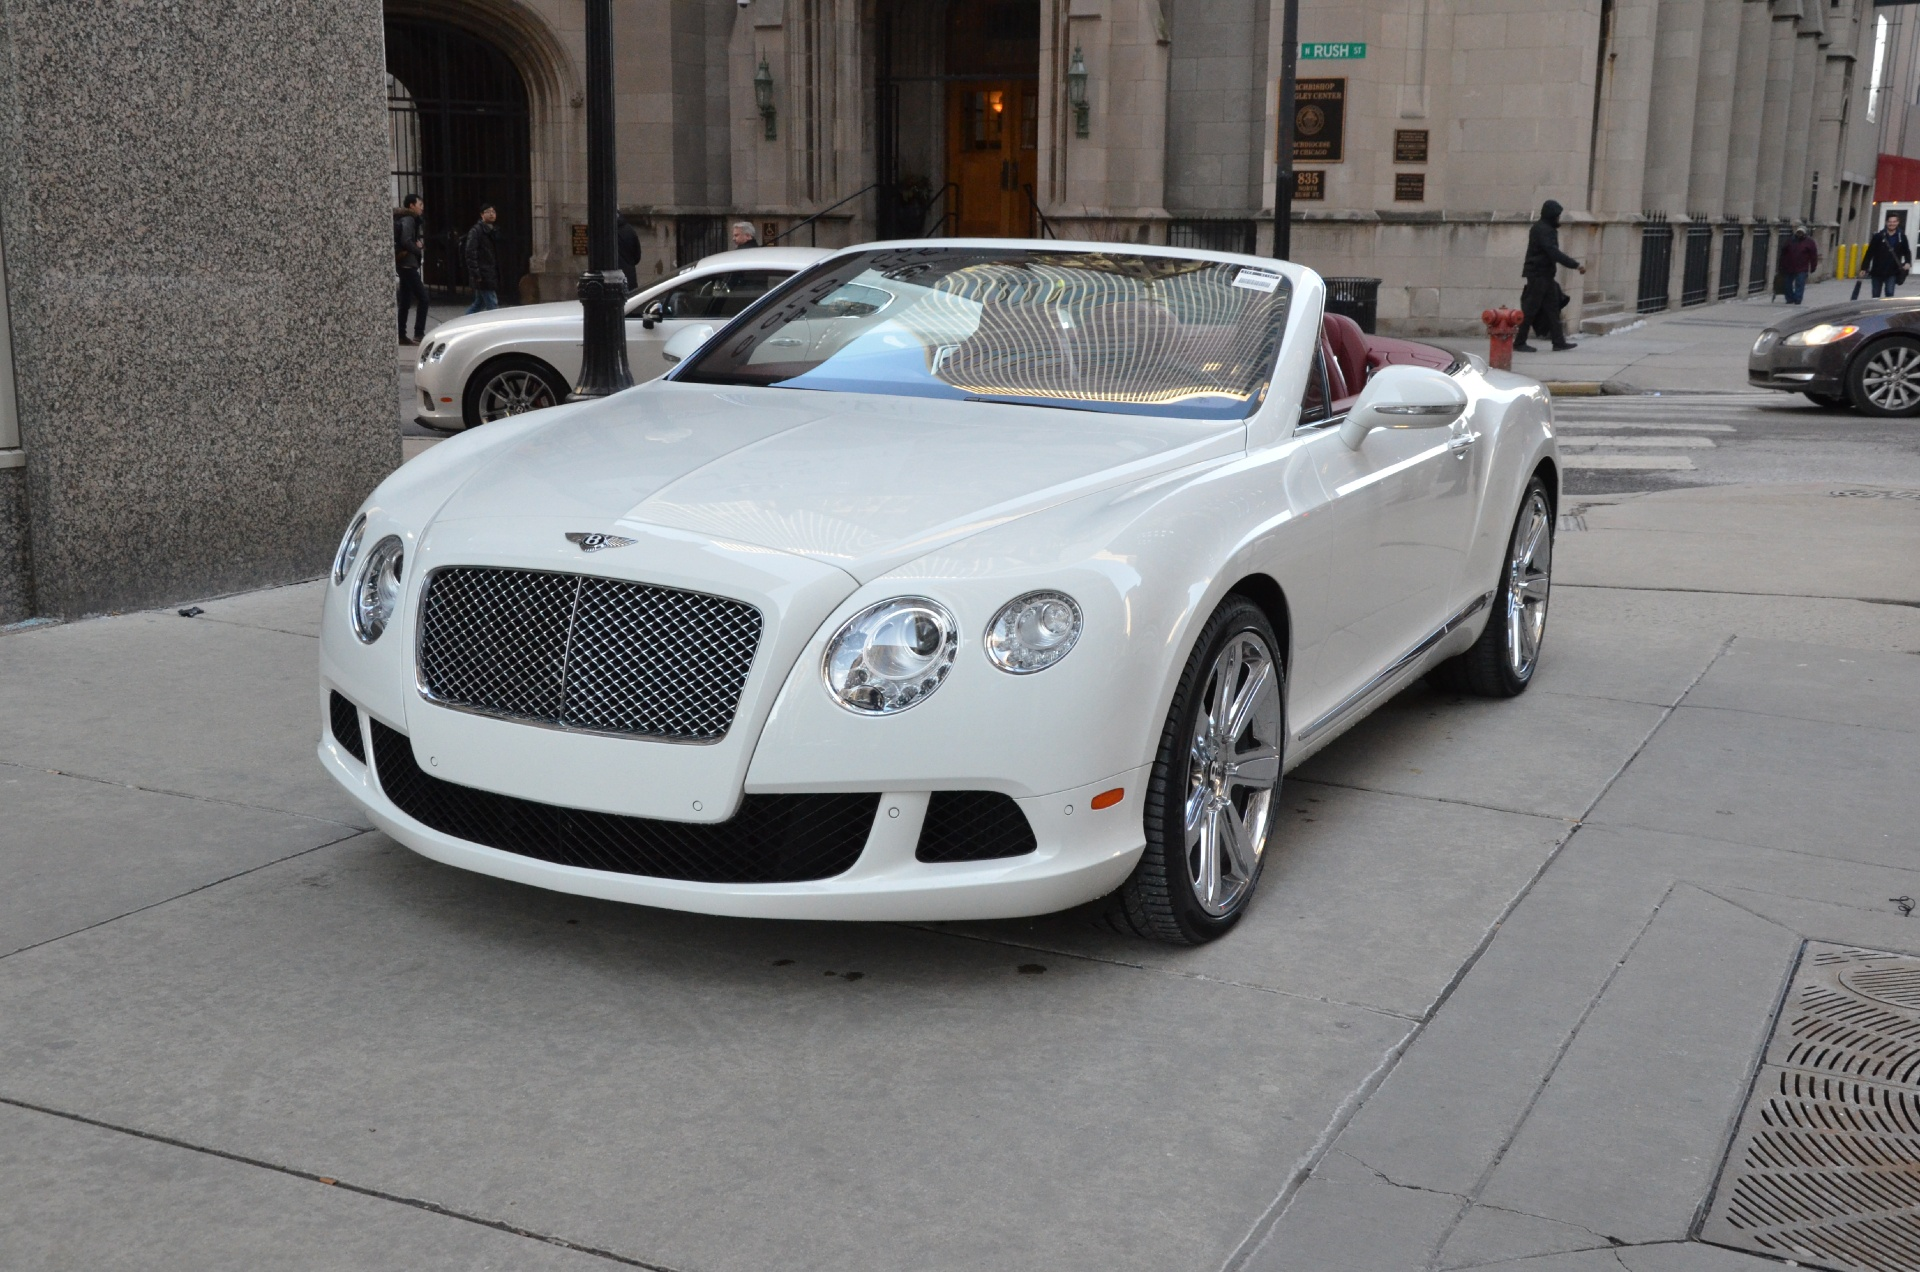 2013 Bentley Continental GTC Stock # GC1509 For Sale Near